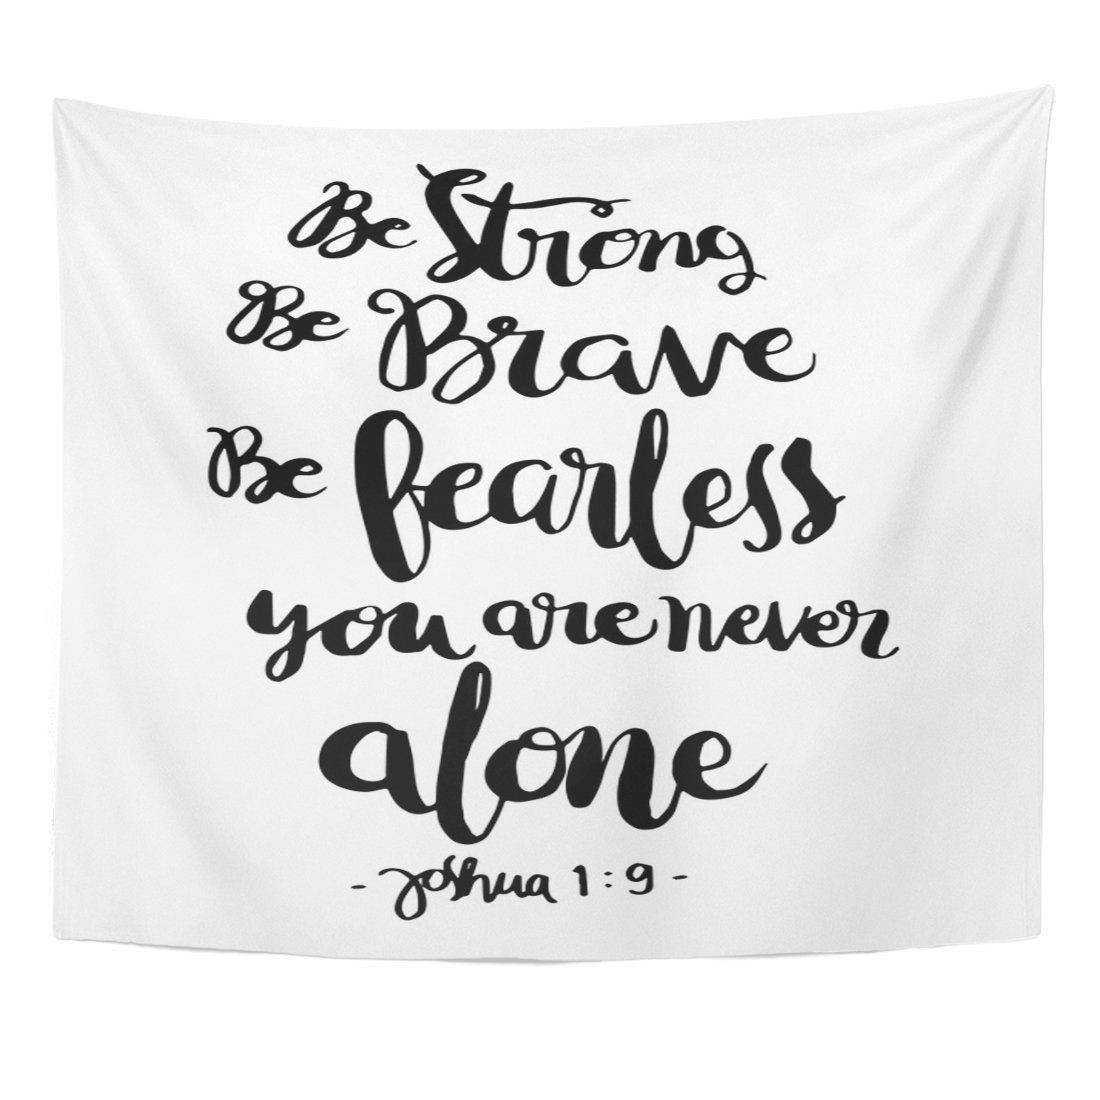 Breezat Tapestry Be Strong Brave Fearless You Are Never Alone Bible Verse Hand Lettered Quote Modern Calligraphy Christian Home Decor Wall Hanging for Living Room Bedroom Dorm 50x60 Inches